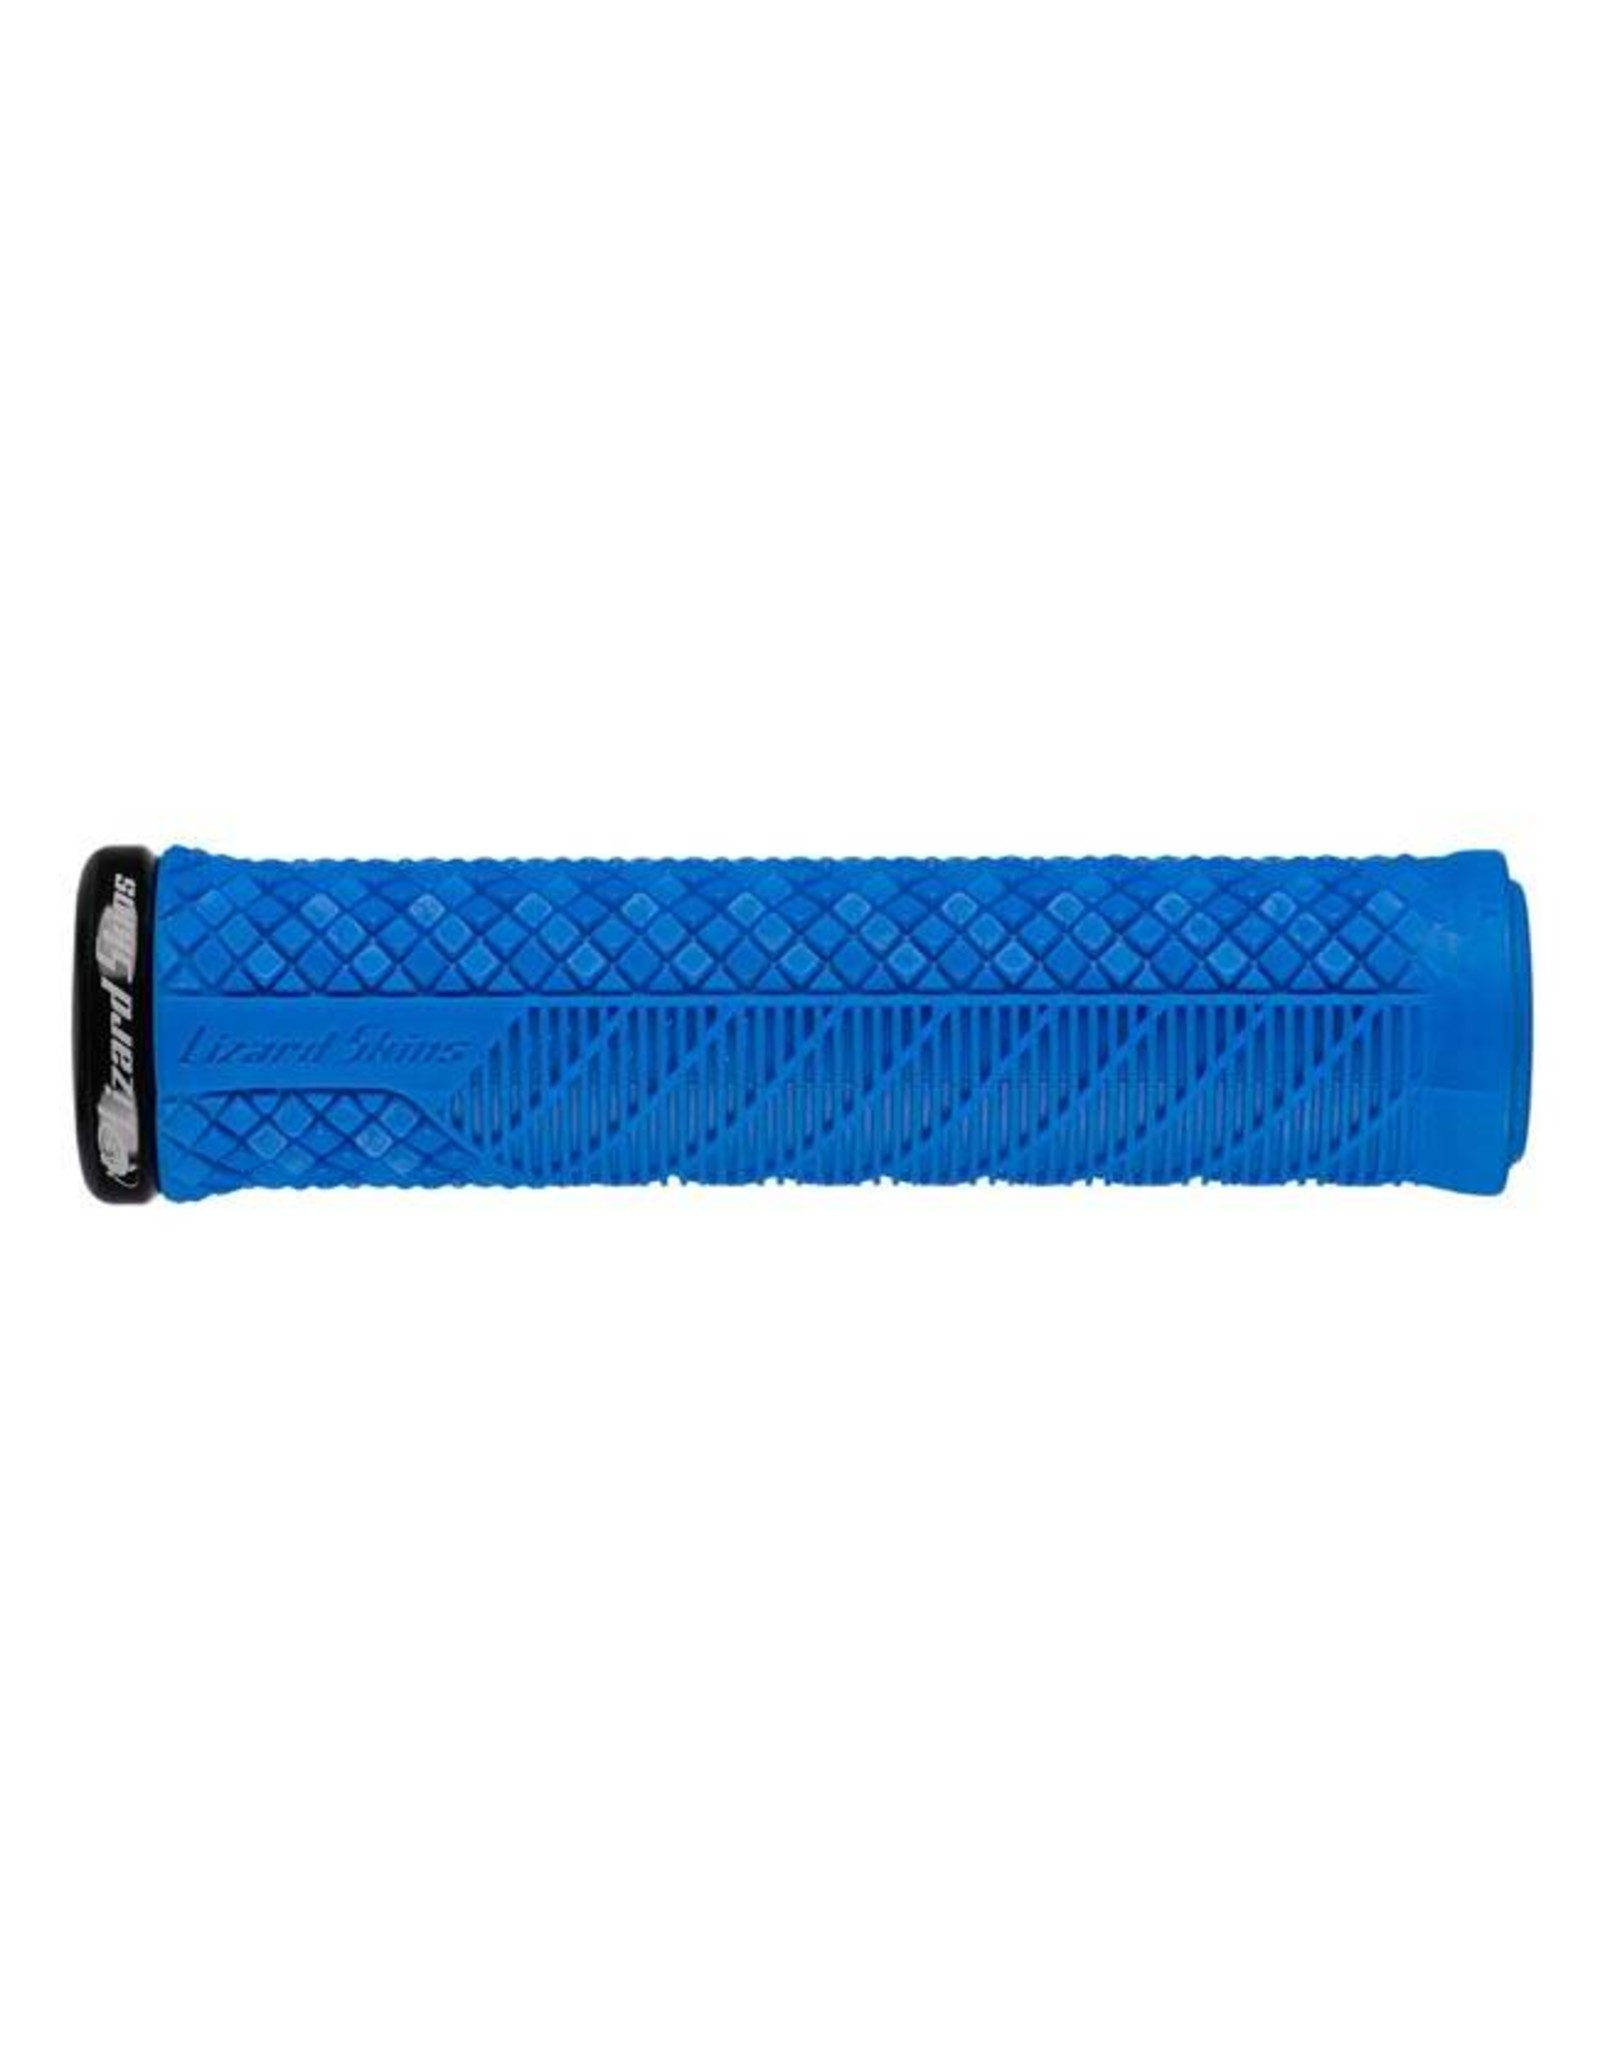 Lizard Skins Lizard Skins Charger Evo Lock On Grips Electric Blue